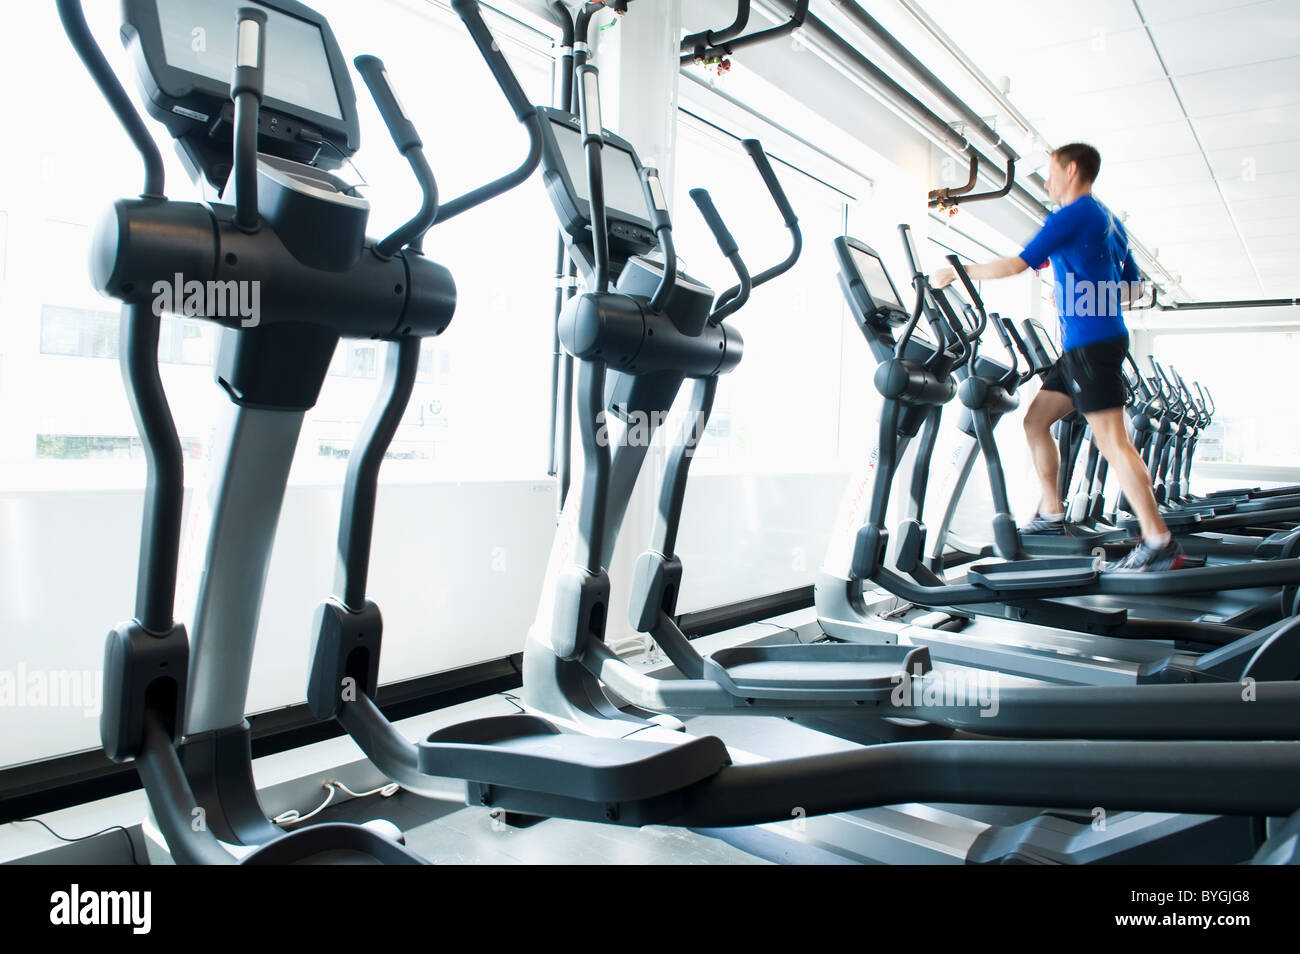 Man running on exercise machine in gym - Stock Image